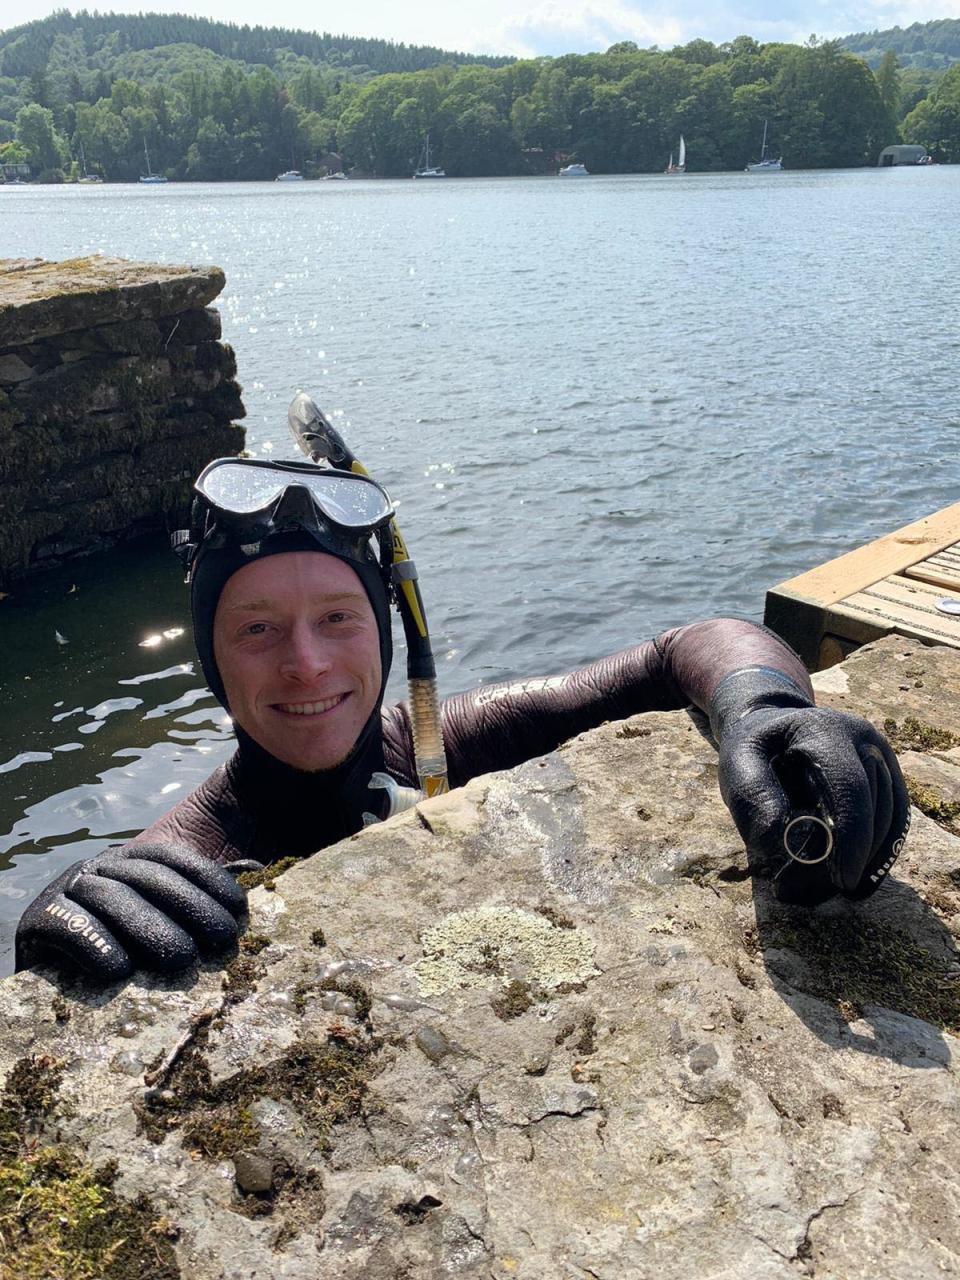 Lake District Diver Angus Hosking recovering the wedding ring of Annabelle and Mick Balchin after it was lost in Lake Windermere on their wedding day (Annabelle Balchin)